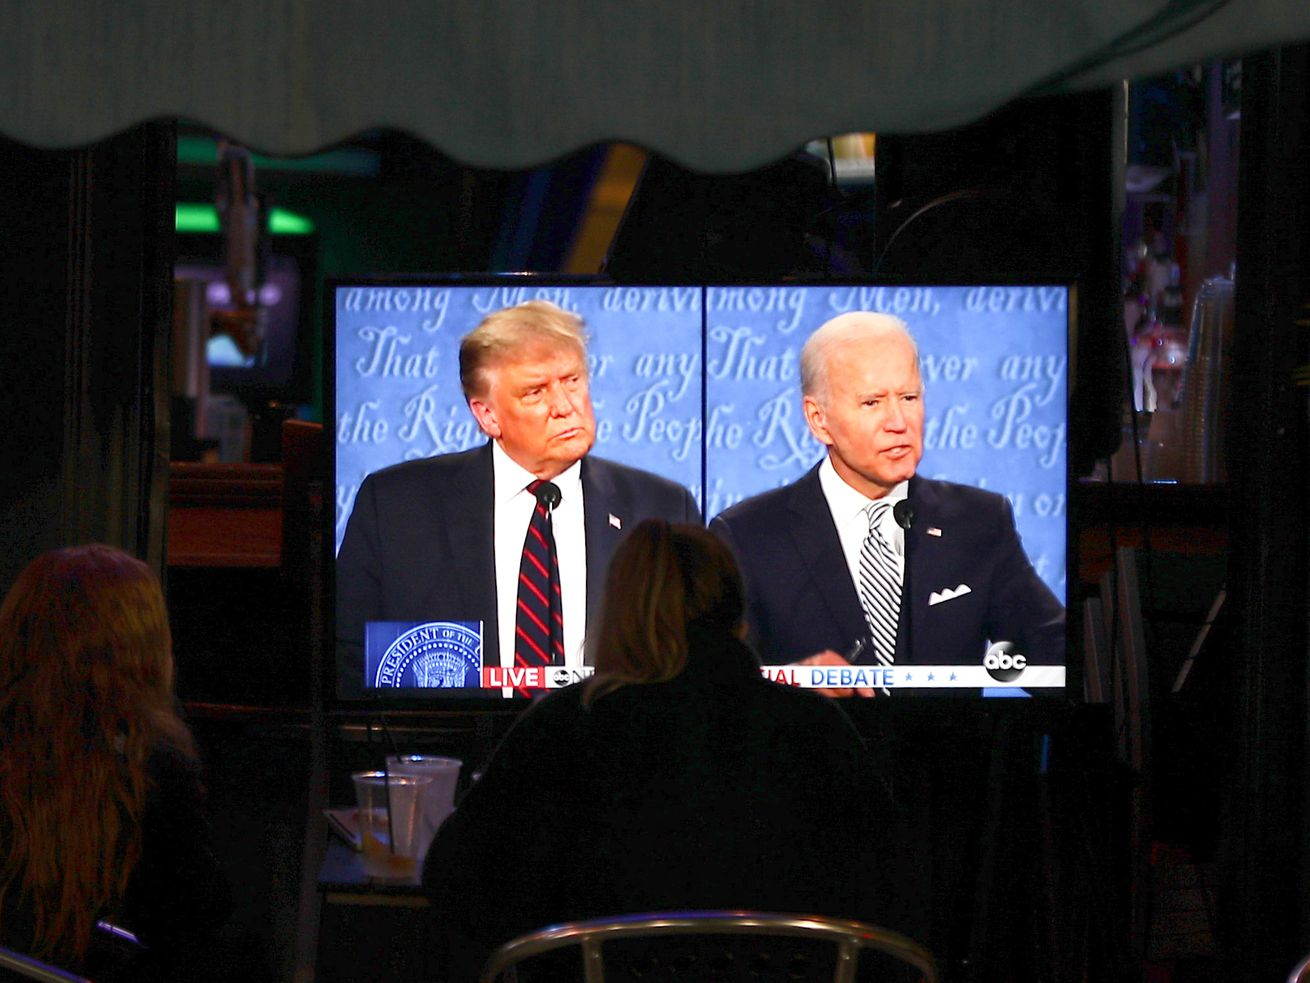 People watch the first 2020 presidential debate between Donald Trump and Joe Biden on a TV screen